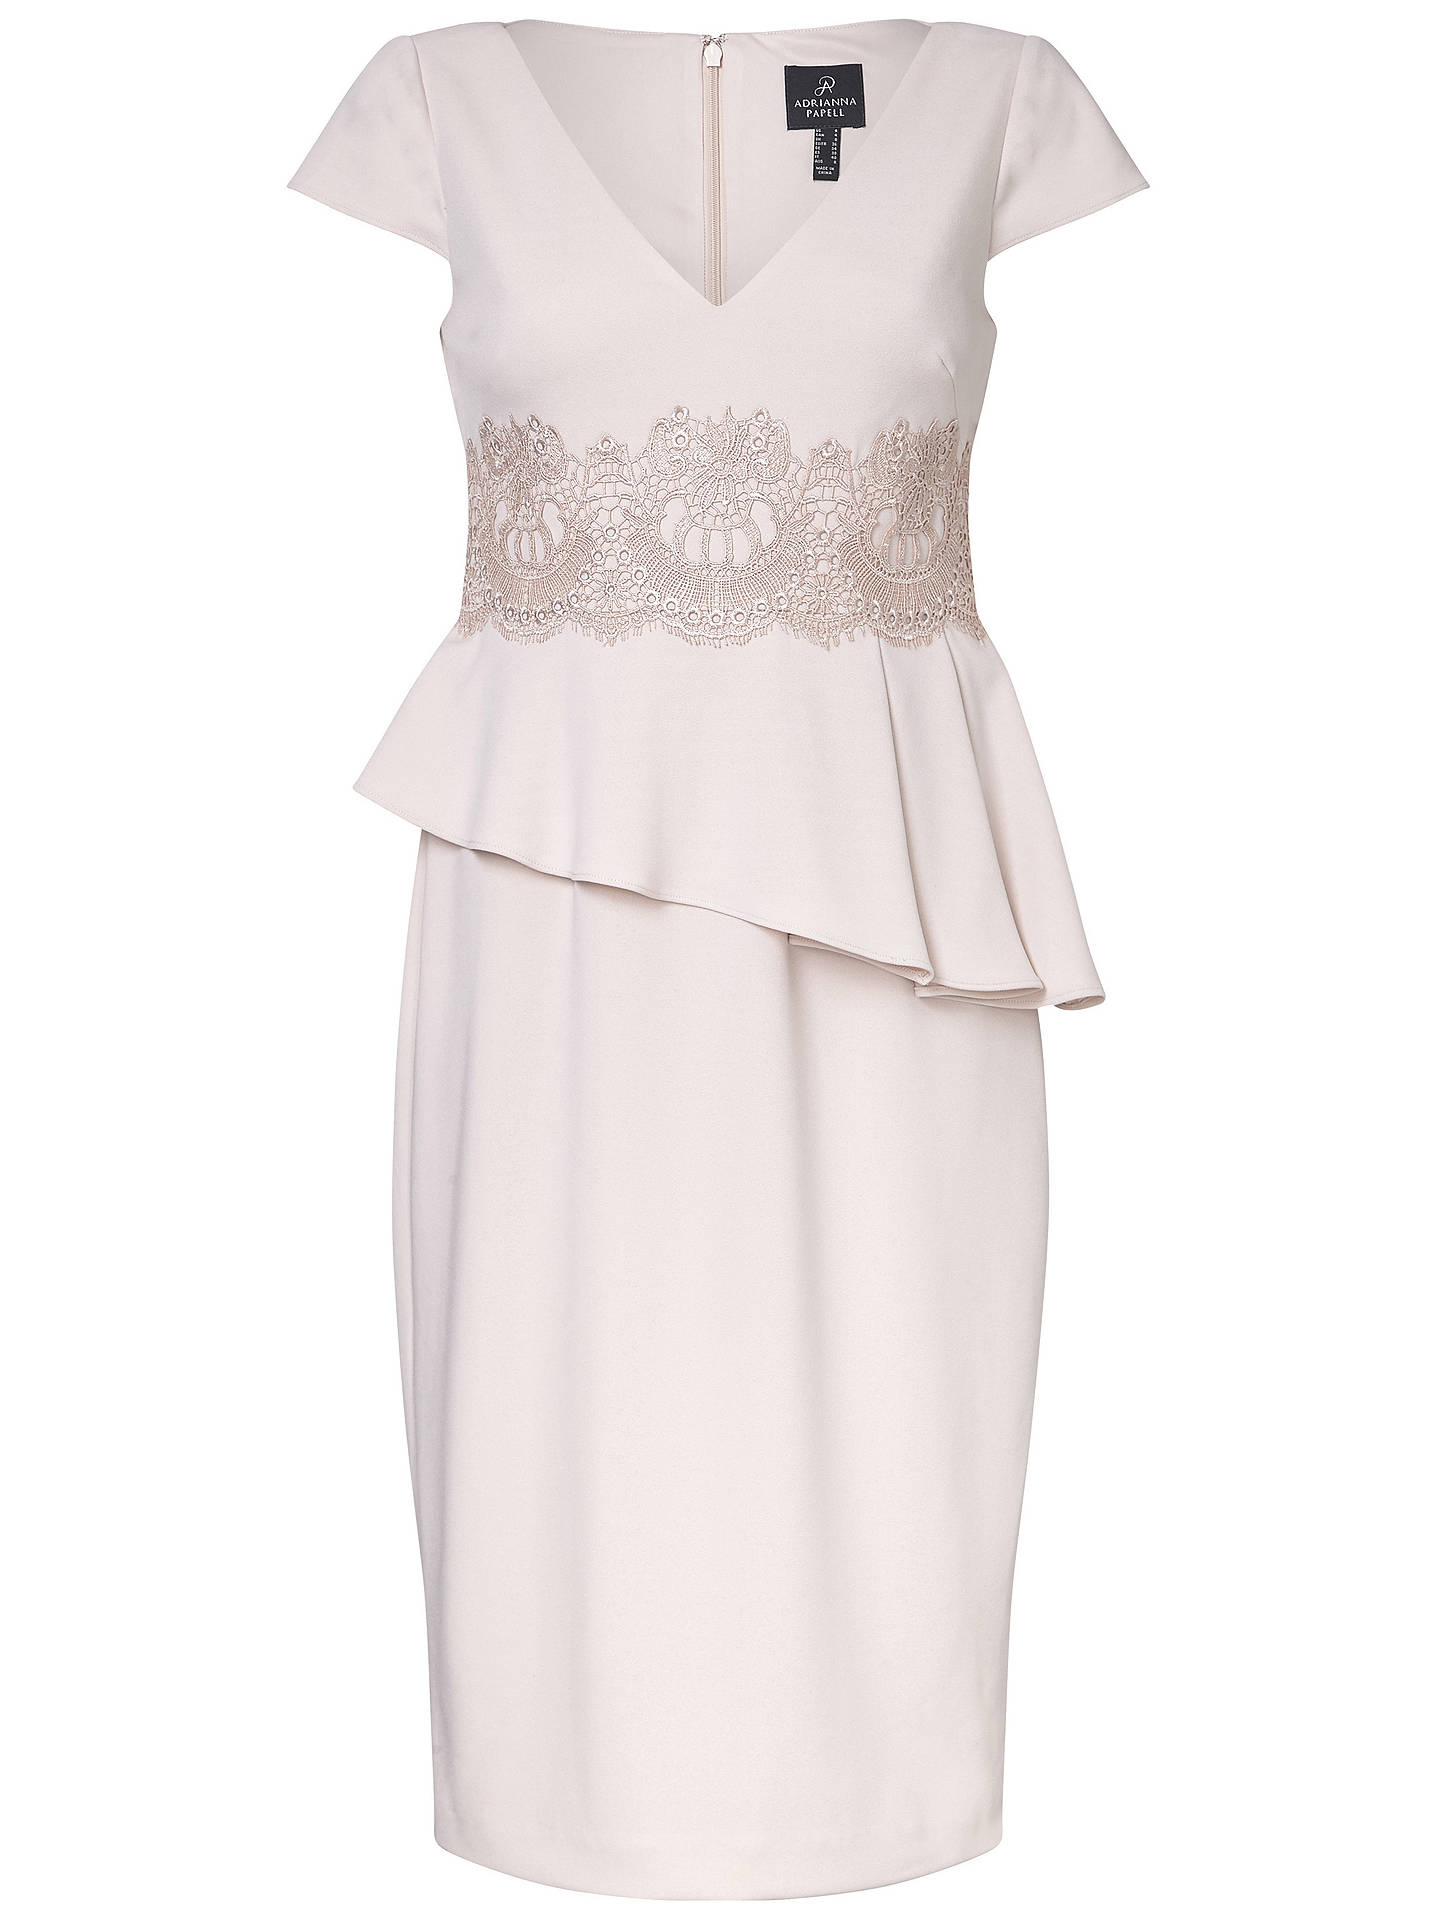 Buy Adrianna Papell Crepe Detail Crepe Dress, Light Blush, 8 Online at johnlewis.com